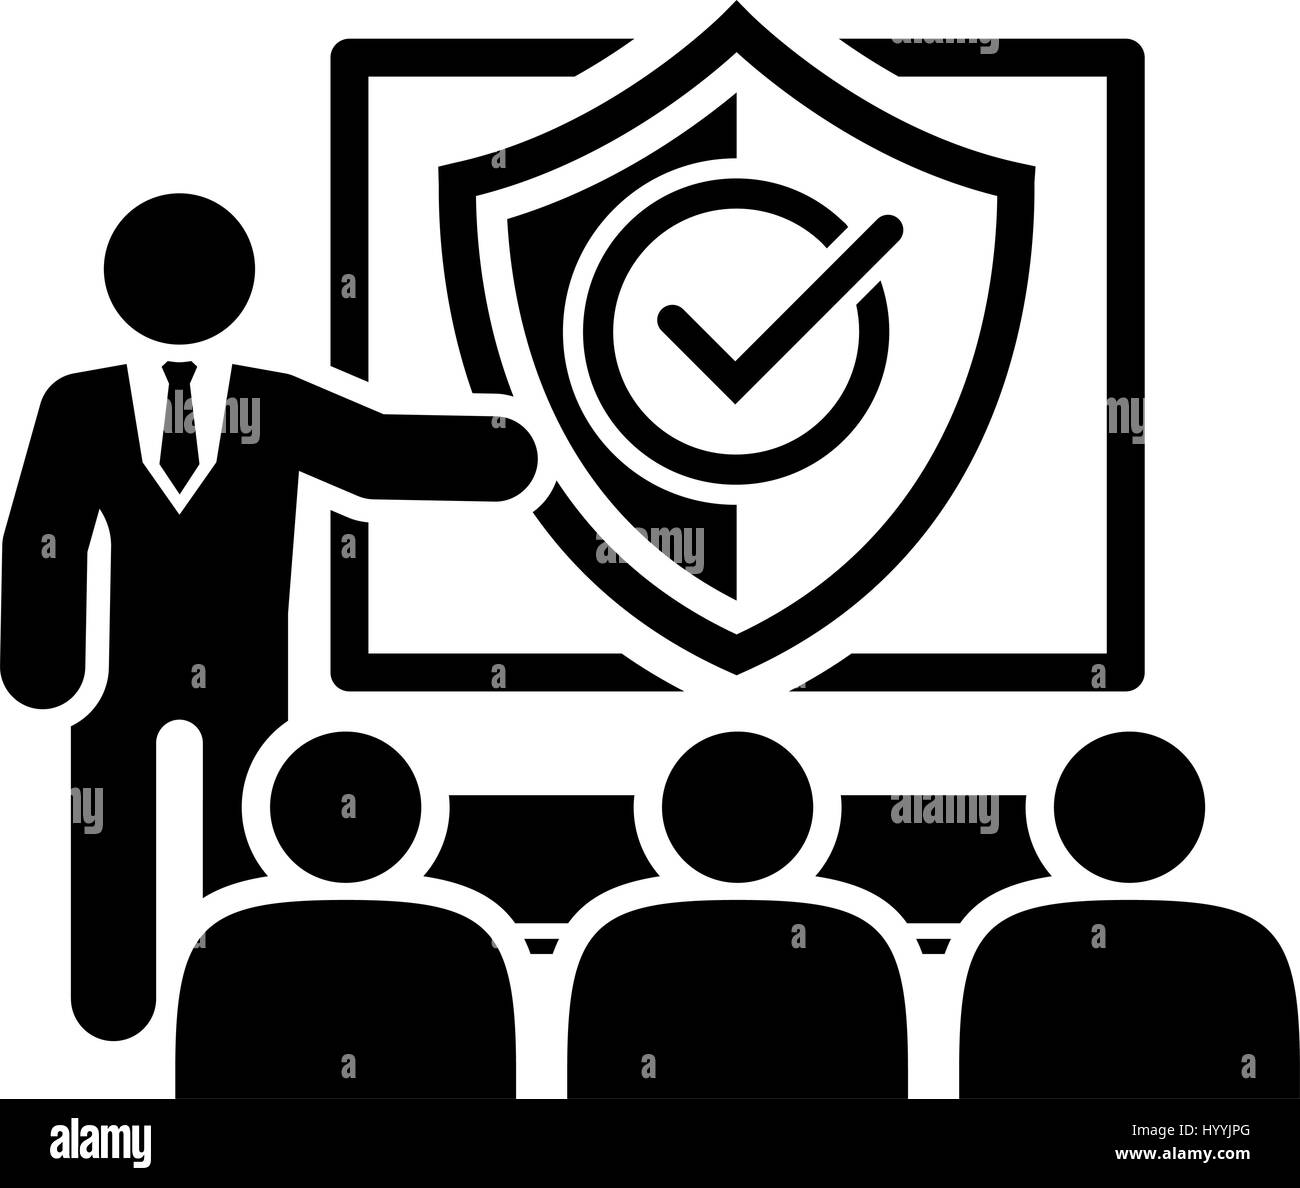 Event Security Briefing